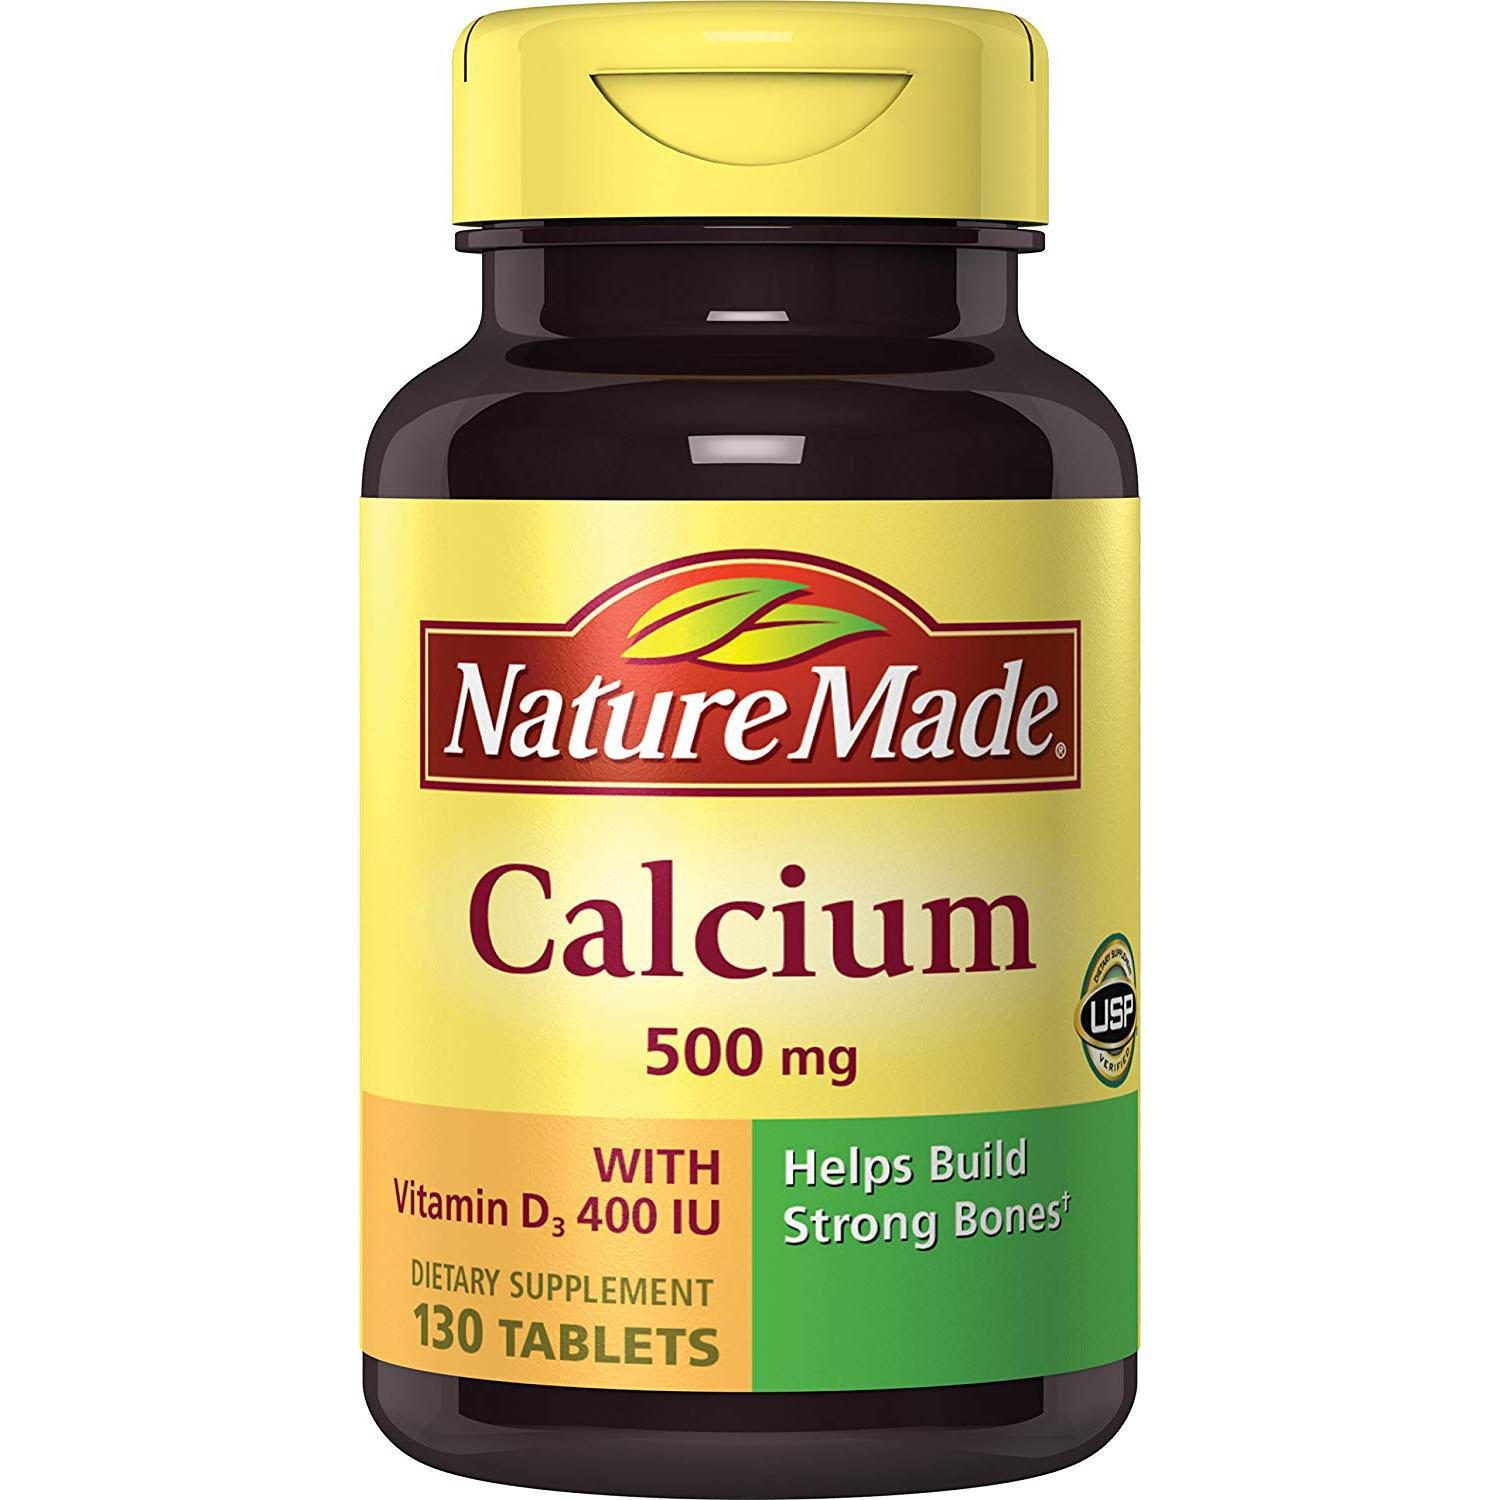 Nature Made Calcium and Vitamin D3 Tablets